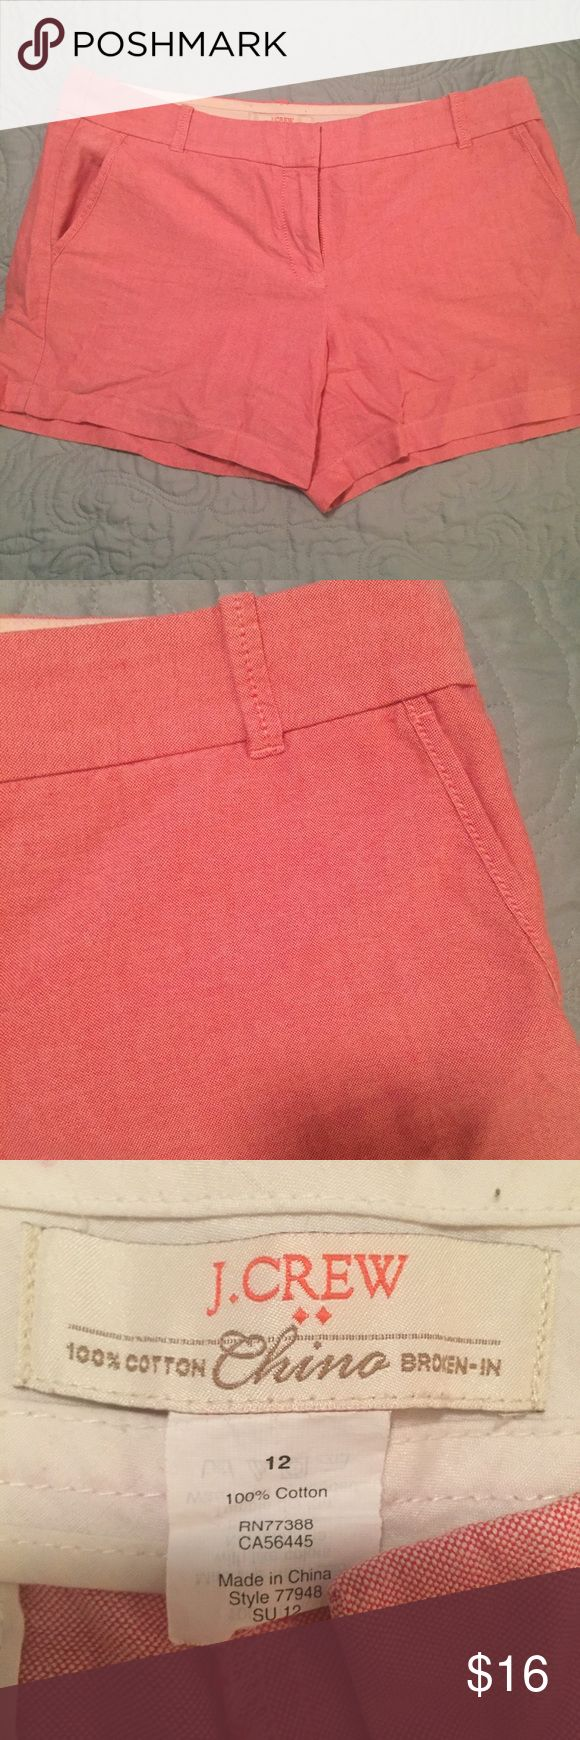 """*FINAL PRICE* J. Crew Red Broken-in Chino Shorts Broken-in chino shorts from J. Crew Factory. Size 12 with a 5"""" inseam. Side and back pockets. Great condition. See pictures for exact color.  •FINAL PRICE means NO offers accepted •no trades •ask all questions before buying •unfair ratings from buyers are reported & buyer will be blocked - I don't misrepresent my products; what you see is exactly what you get & my prices are way more than fair. Please be kind as I always strive to be kind to…"""